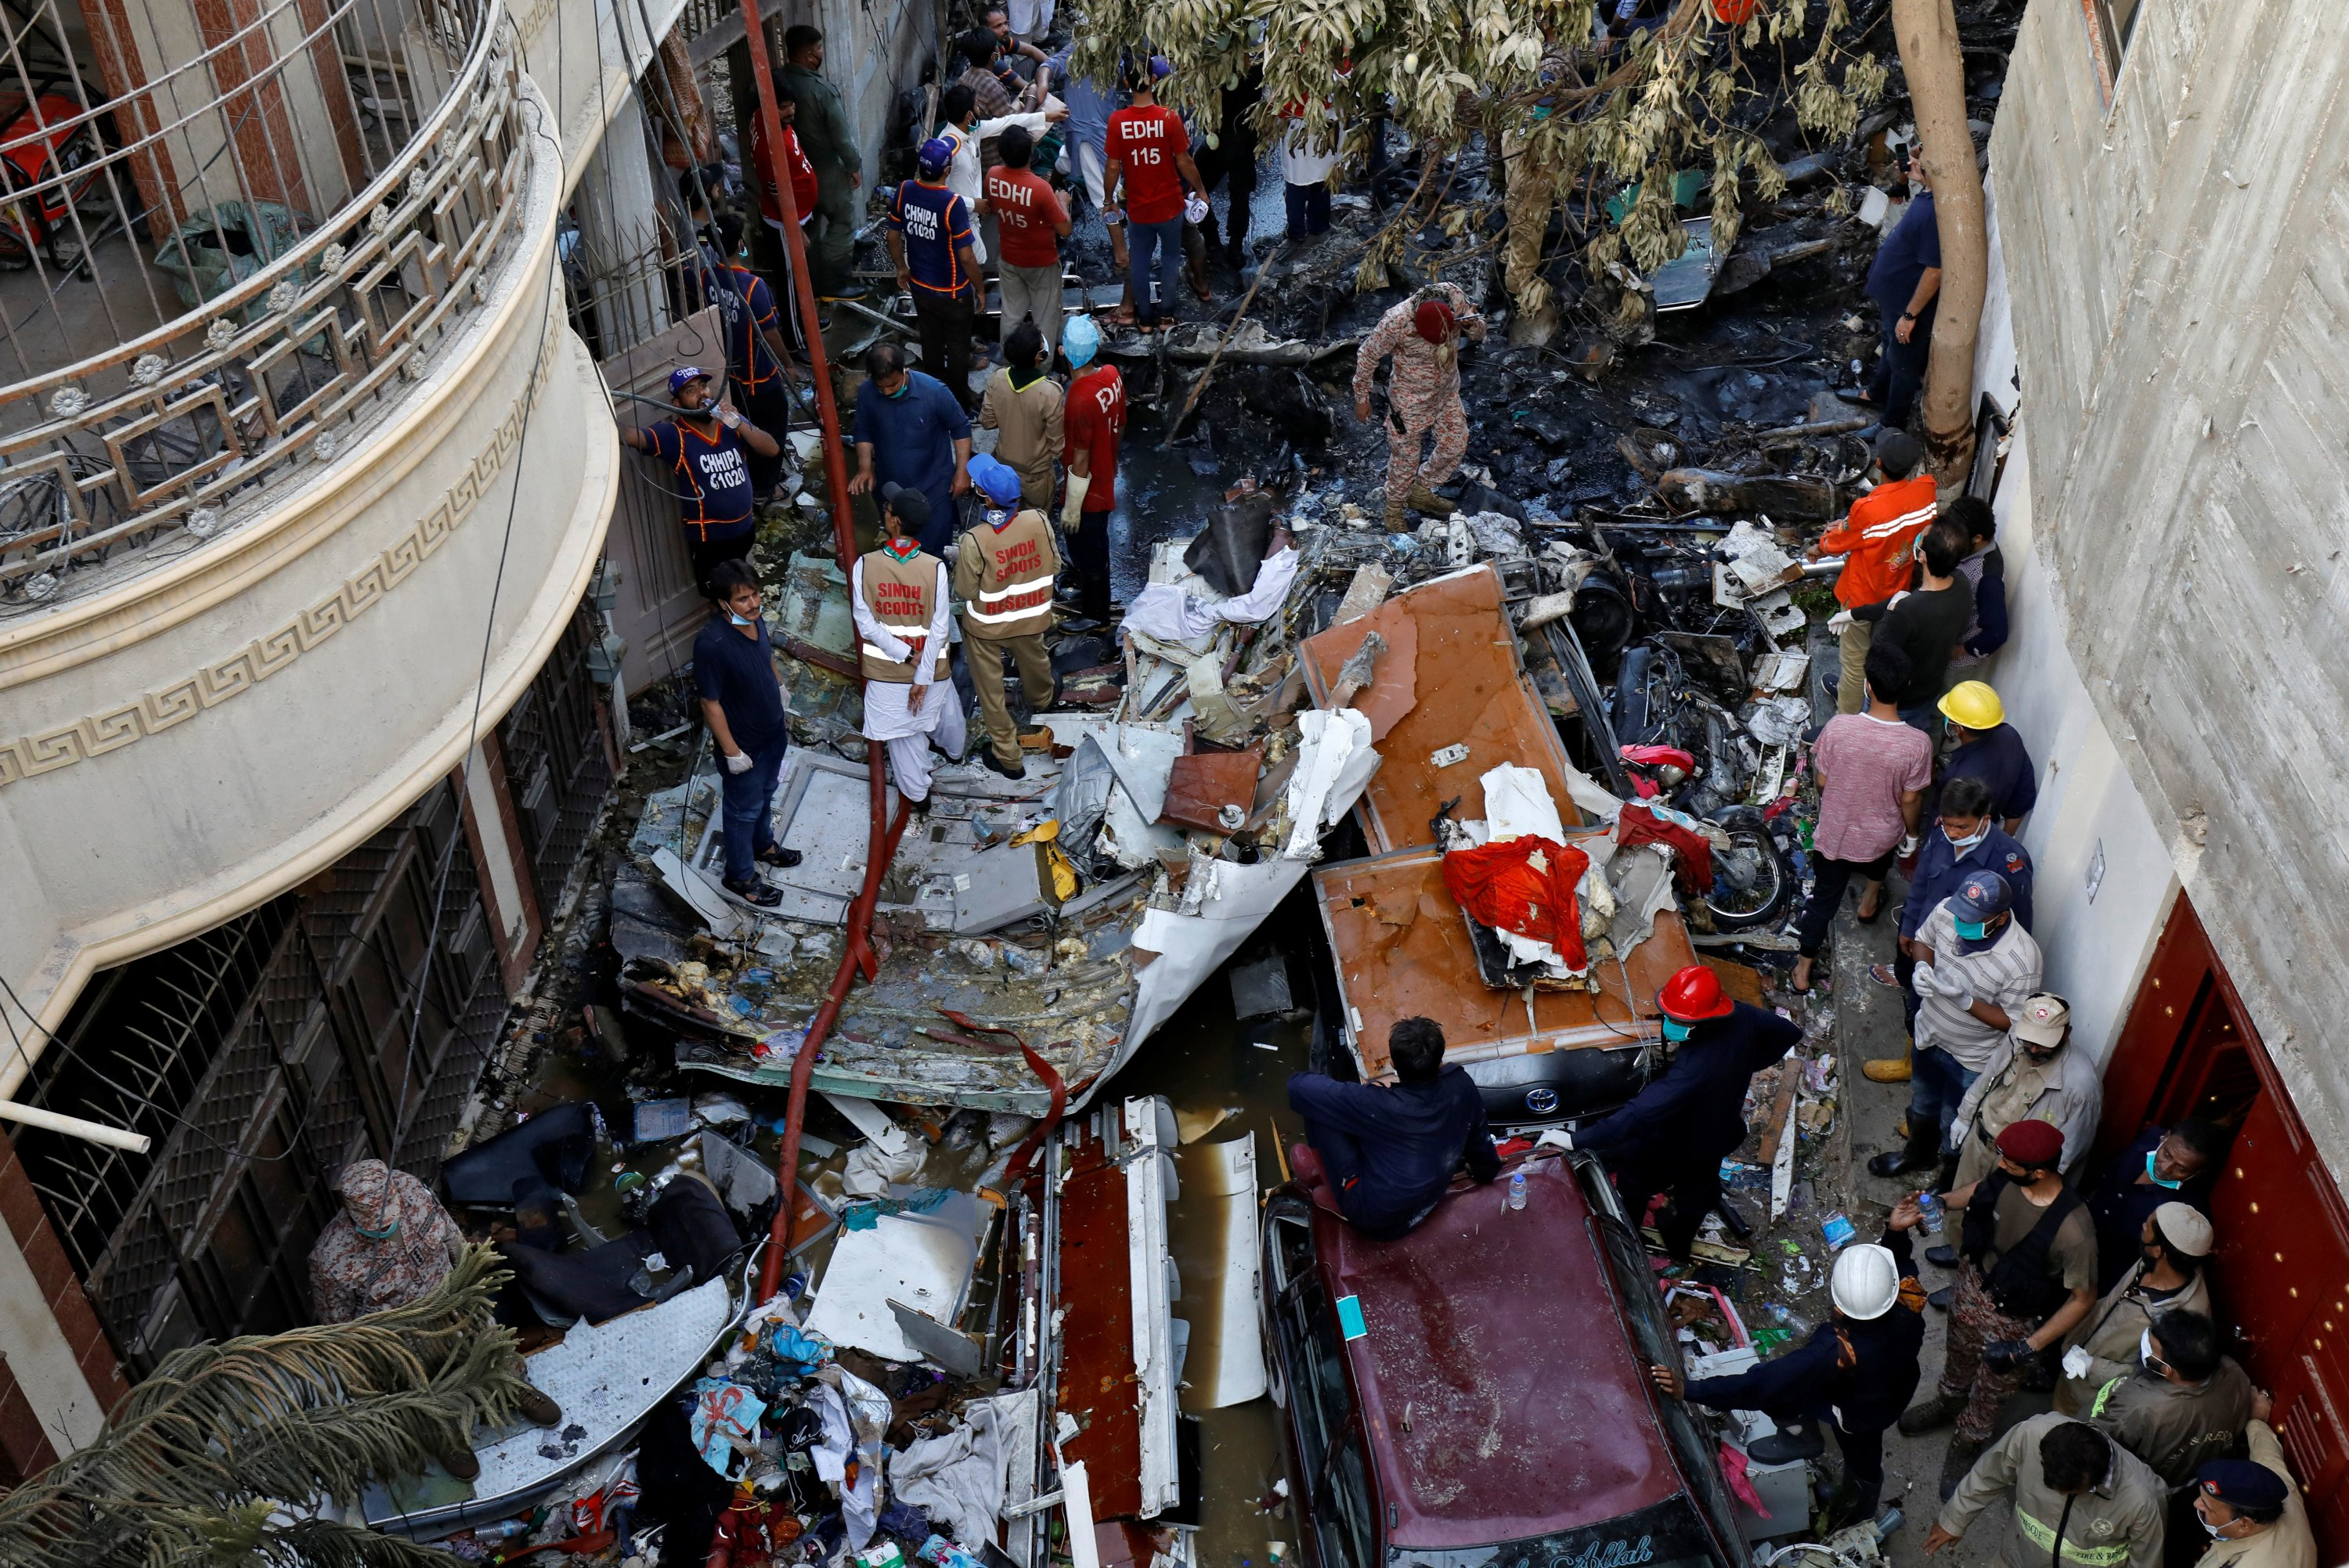 Pakistan Asks For Turkish Airlines Assistance In Plane Crash Probe Daily Sabah